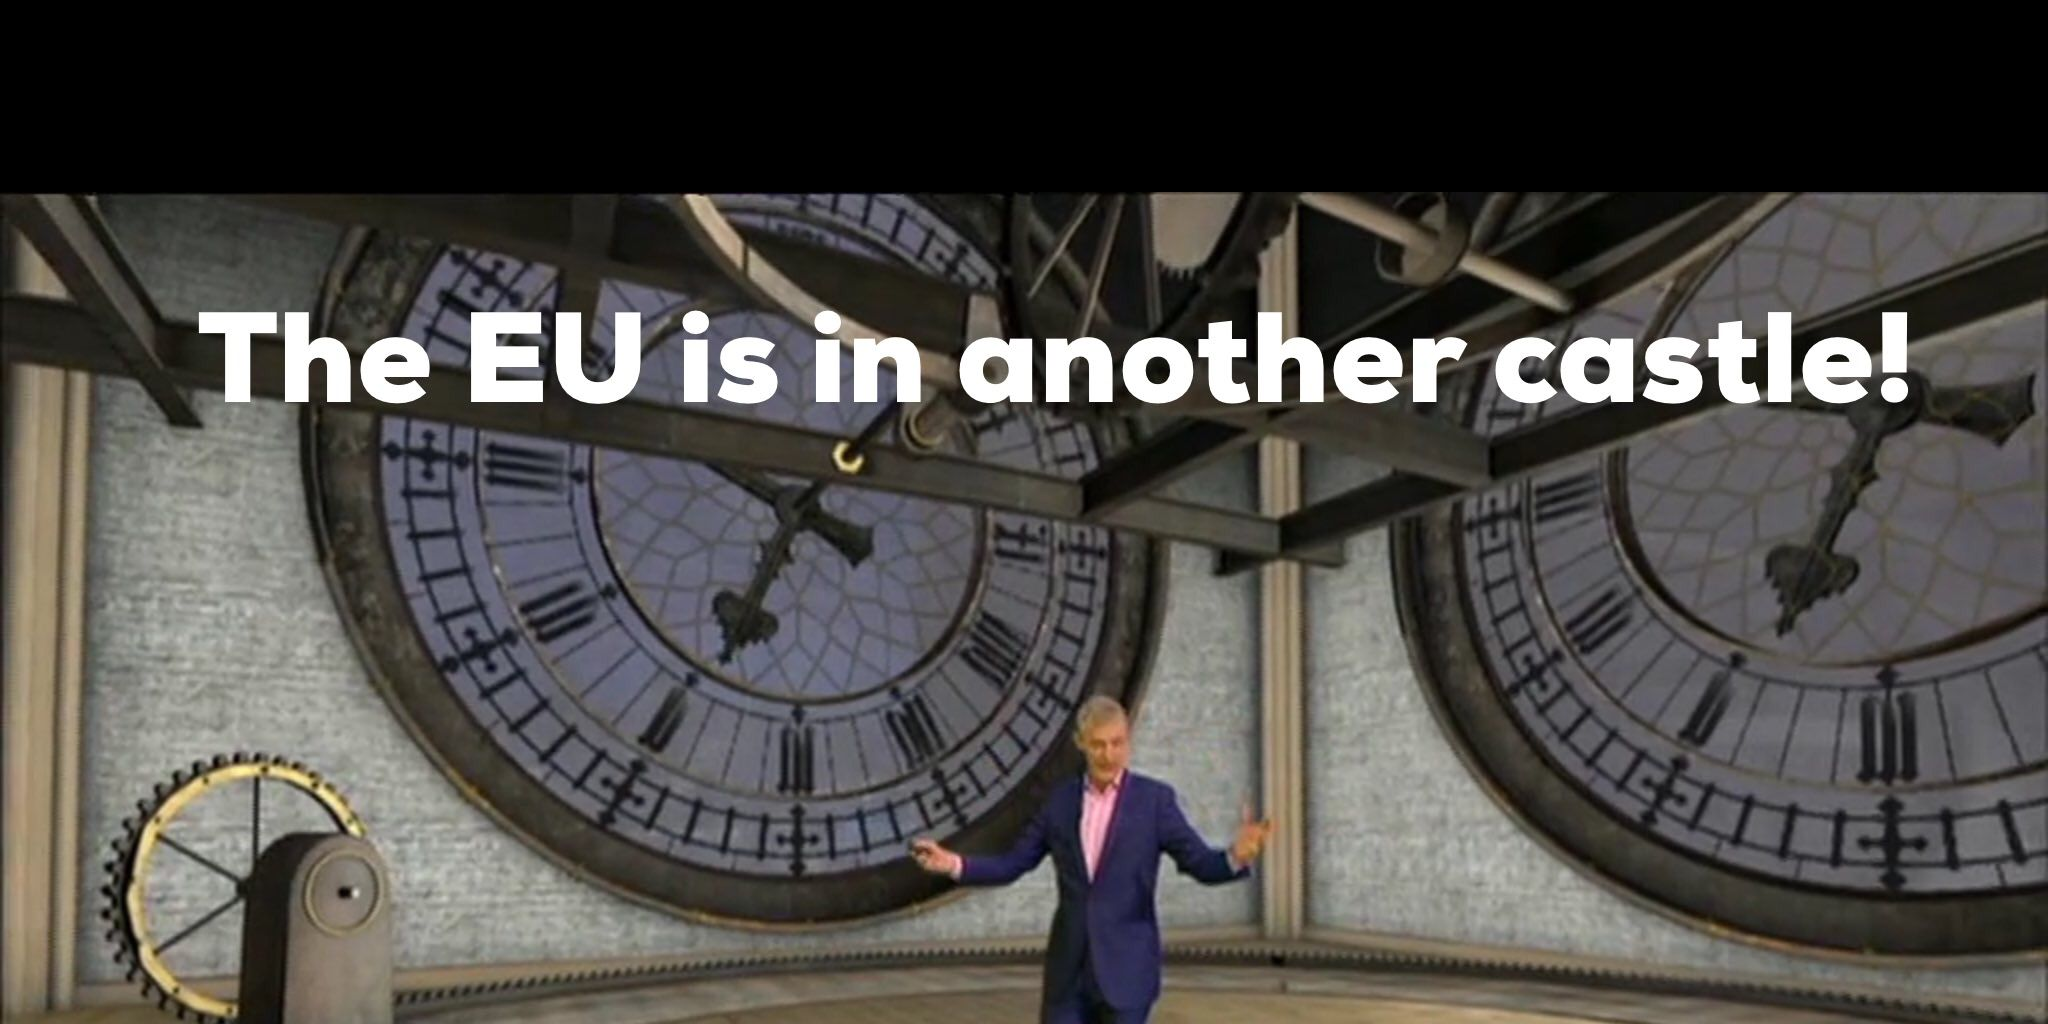 Jeremy Vine on BBC coverage of EU Referendum, Brexit, screen grab